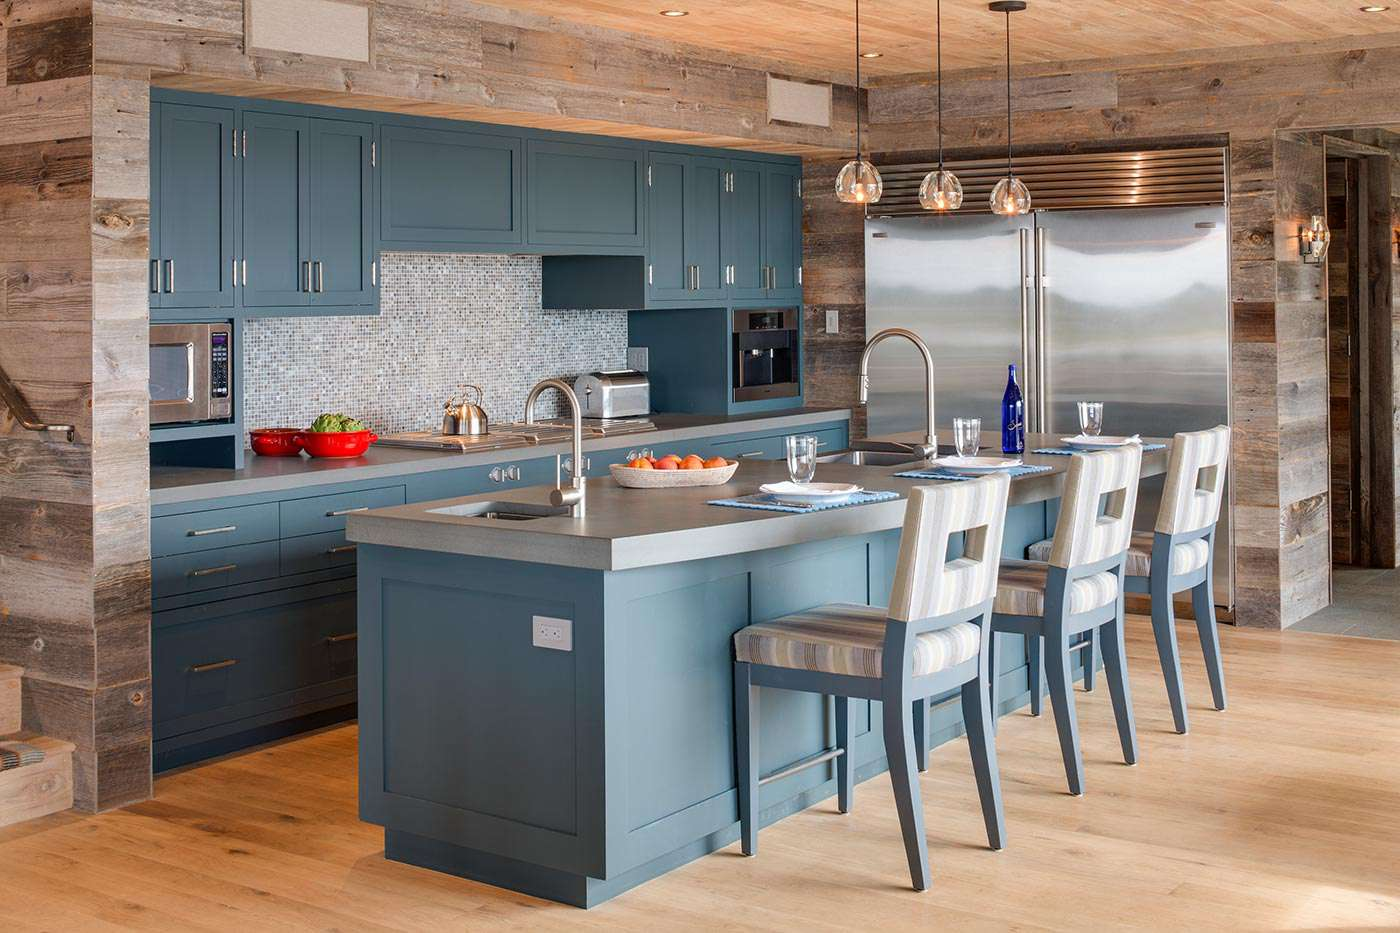 Madera rústica- country-blue-kitchen